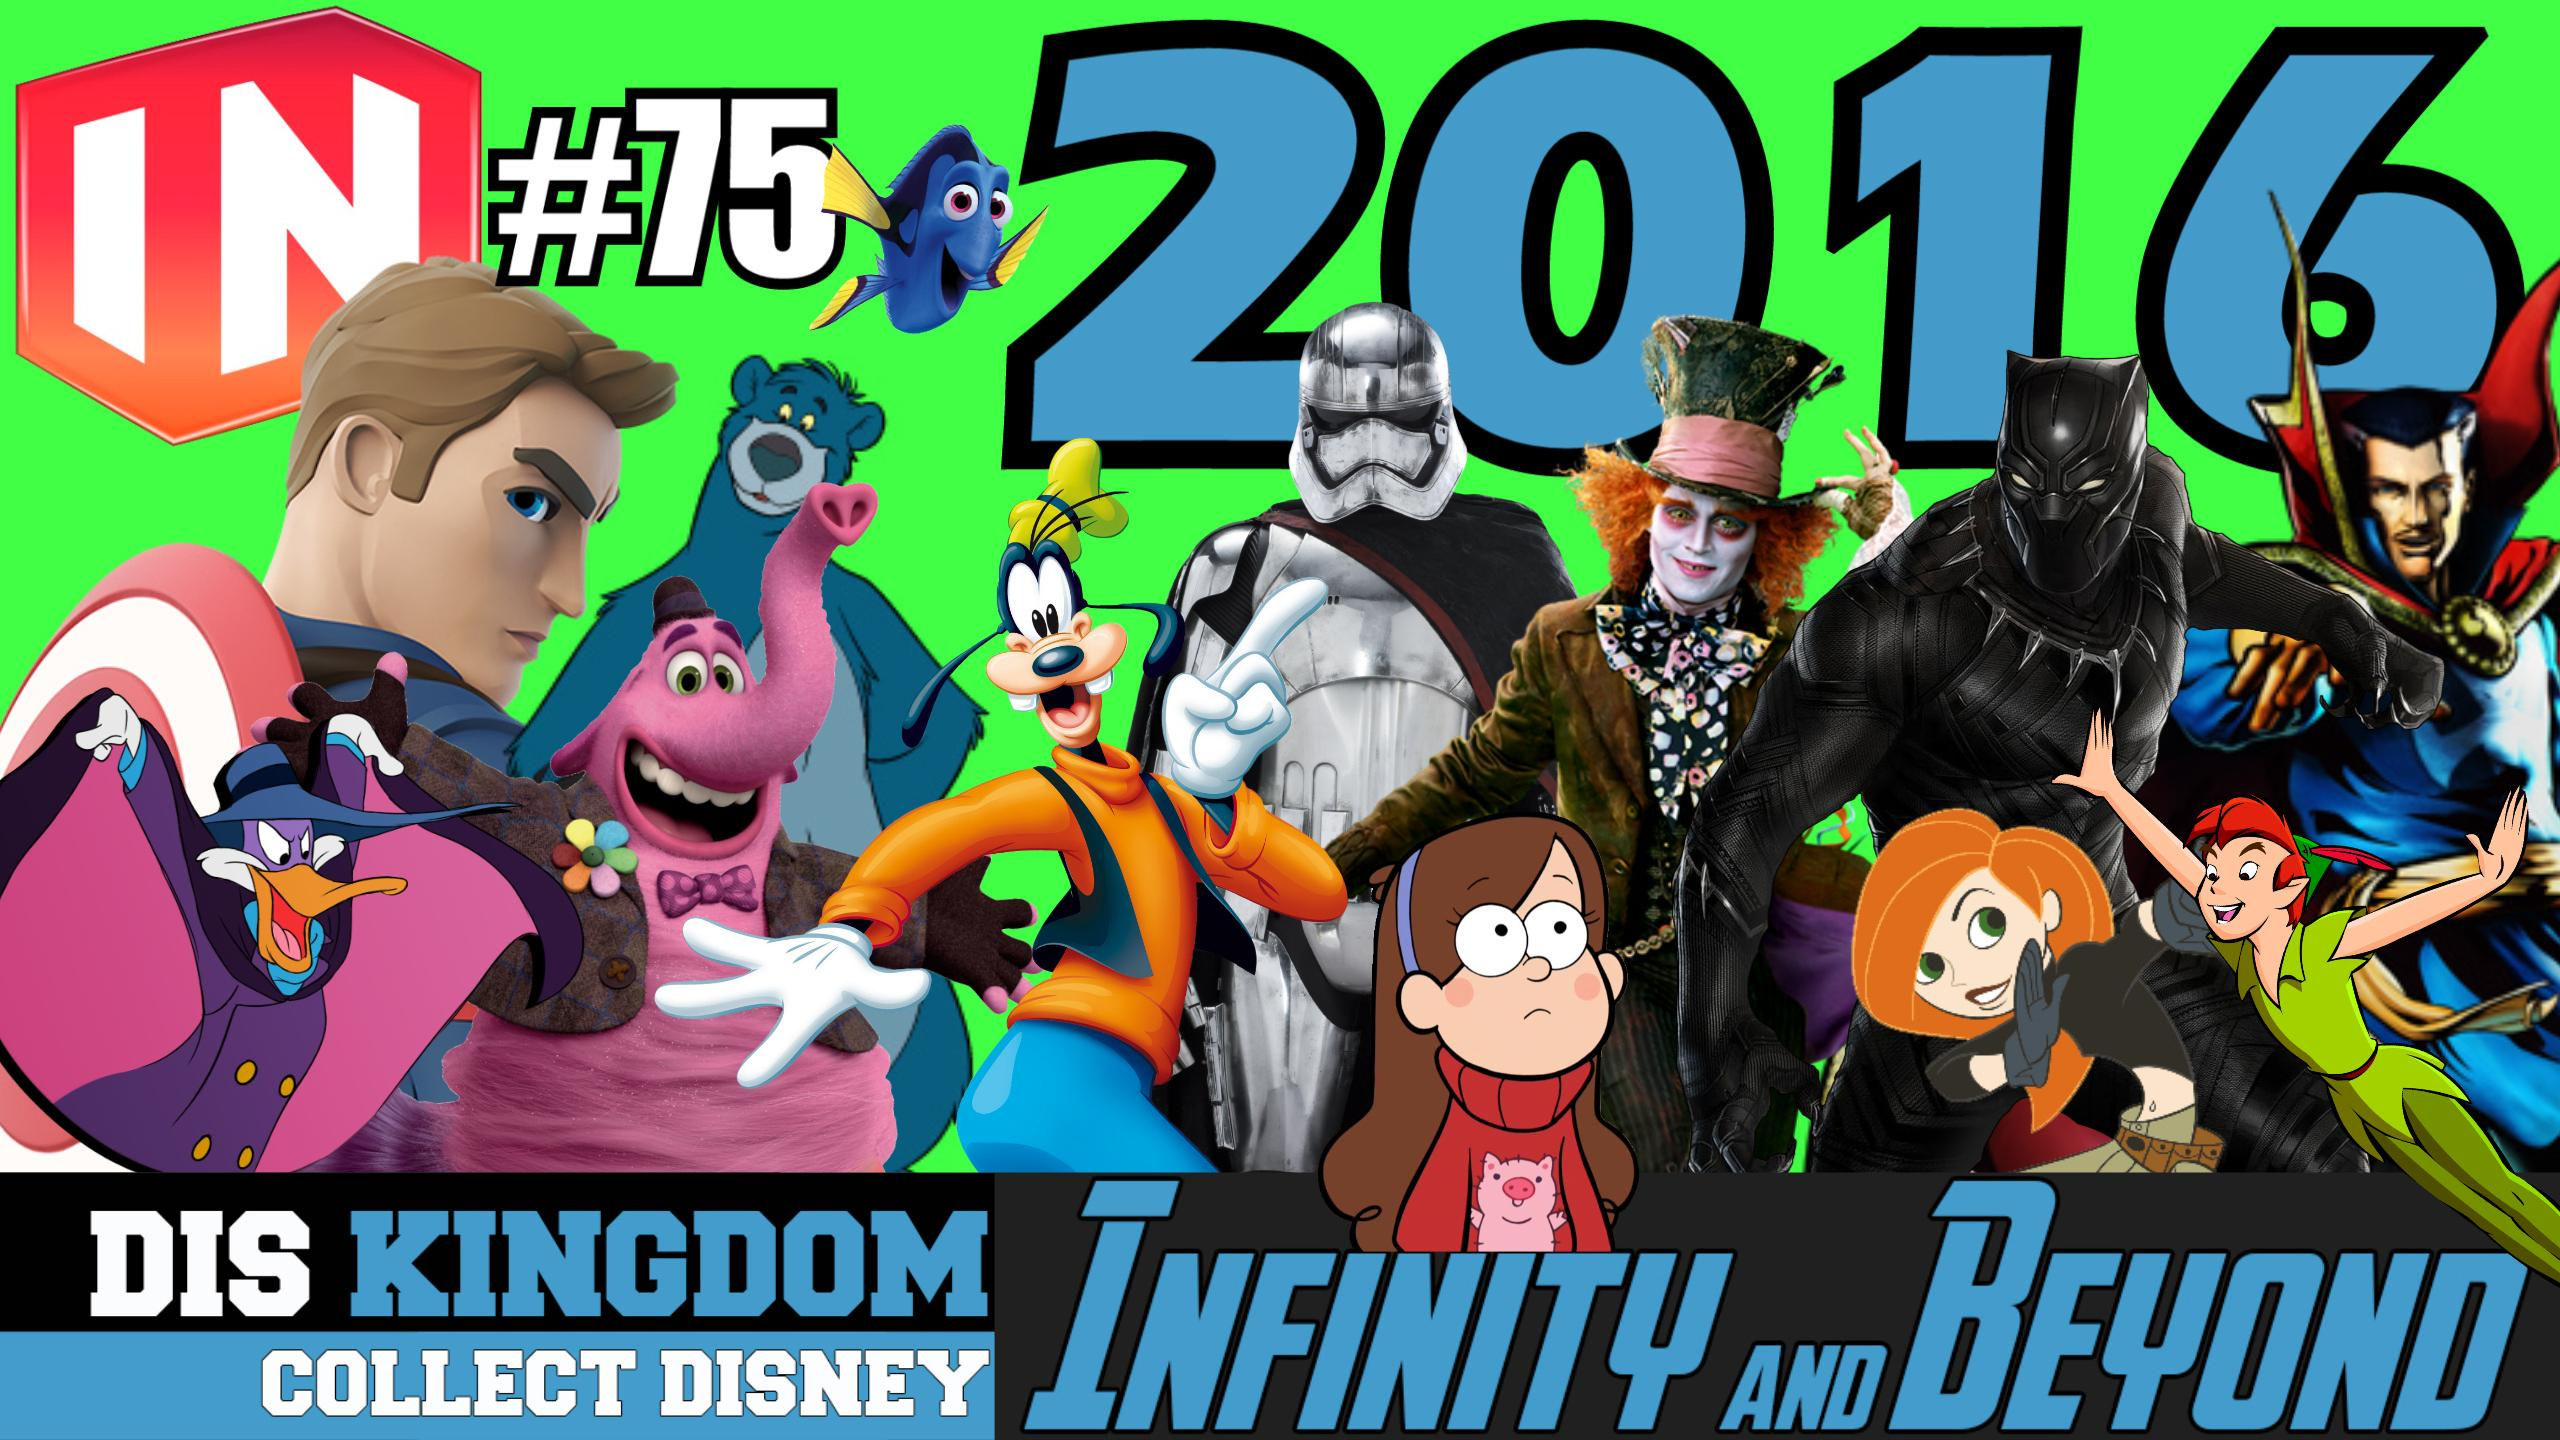 Disney Infinity & Beyond #75 – 2016 Predictions – Will We See A 4.0?